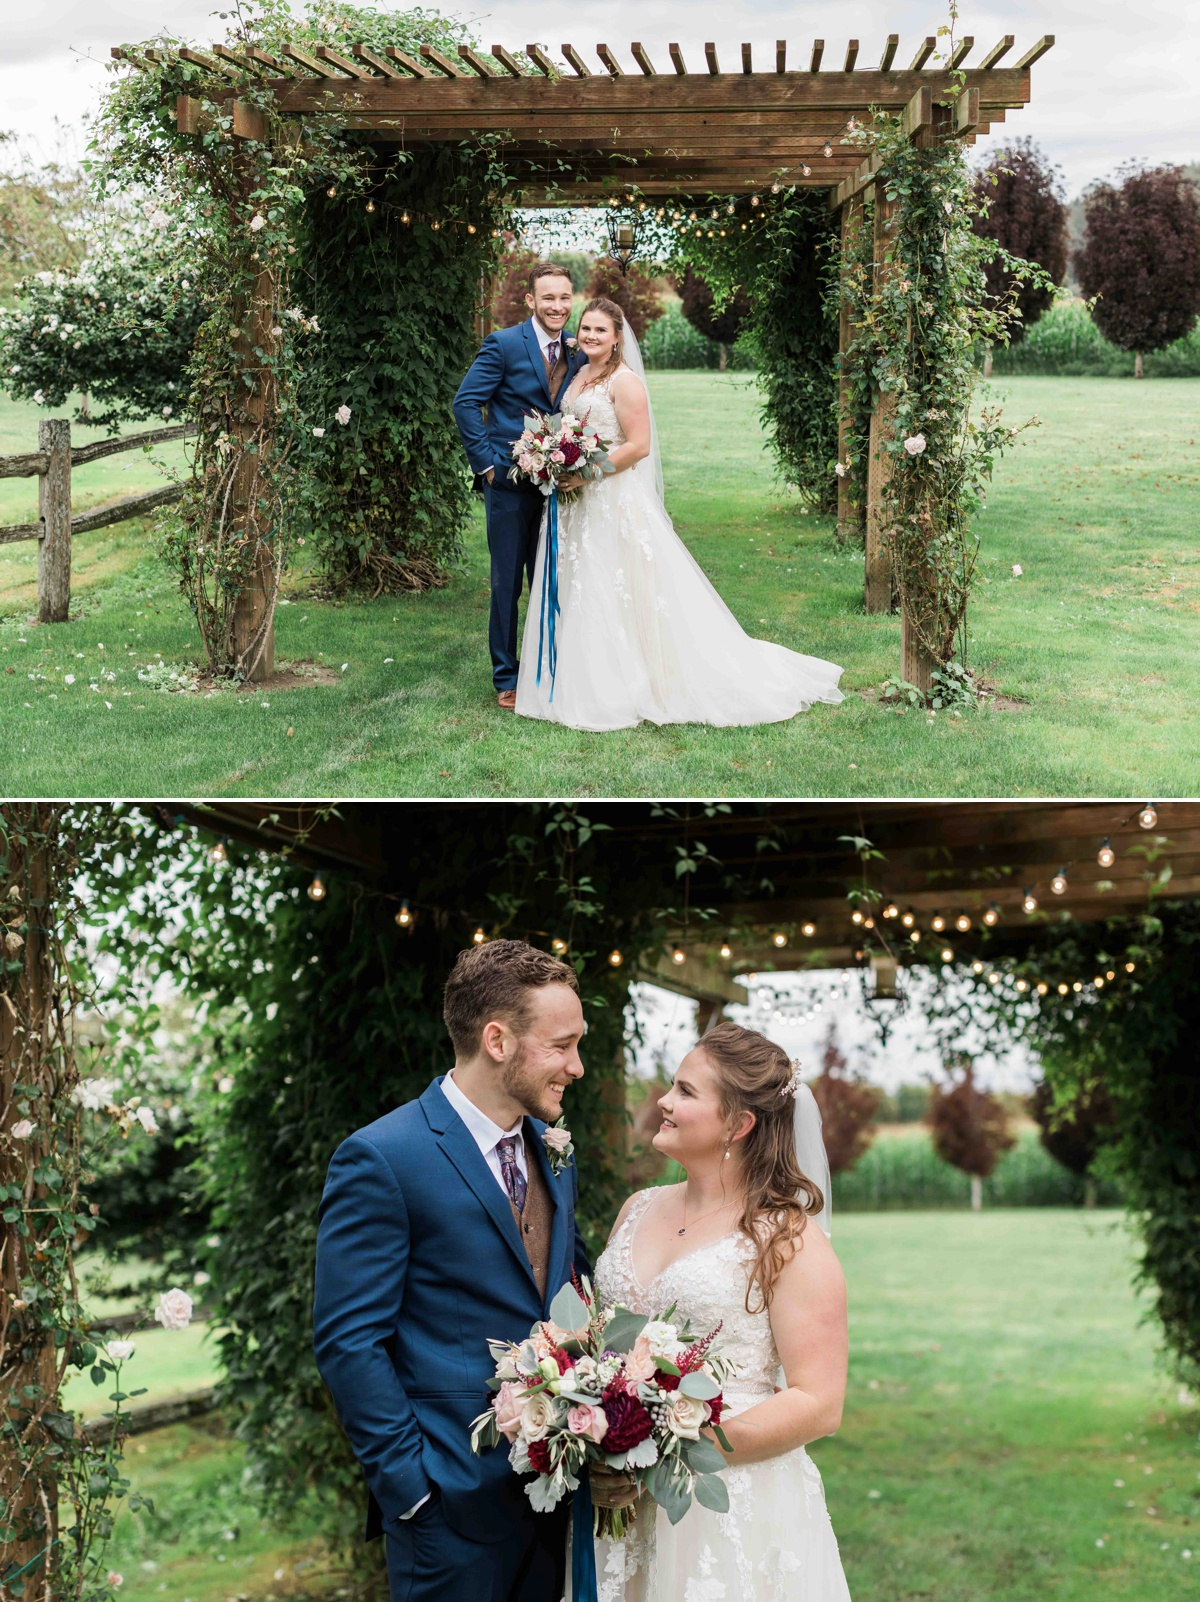 A lovely day at Craven Farms in Snohomish. Photos by Joanna Monger Photography, Snohomish and Seattle Wedding Photographer.